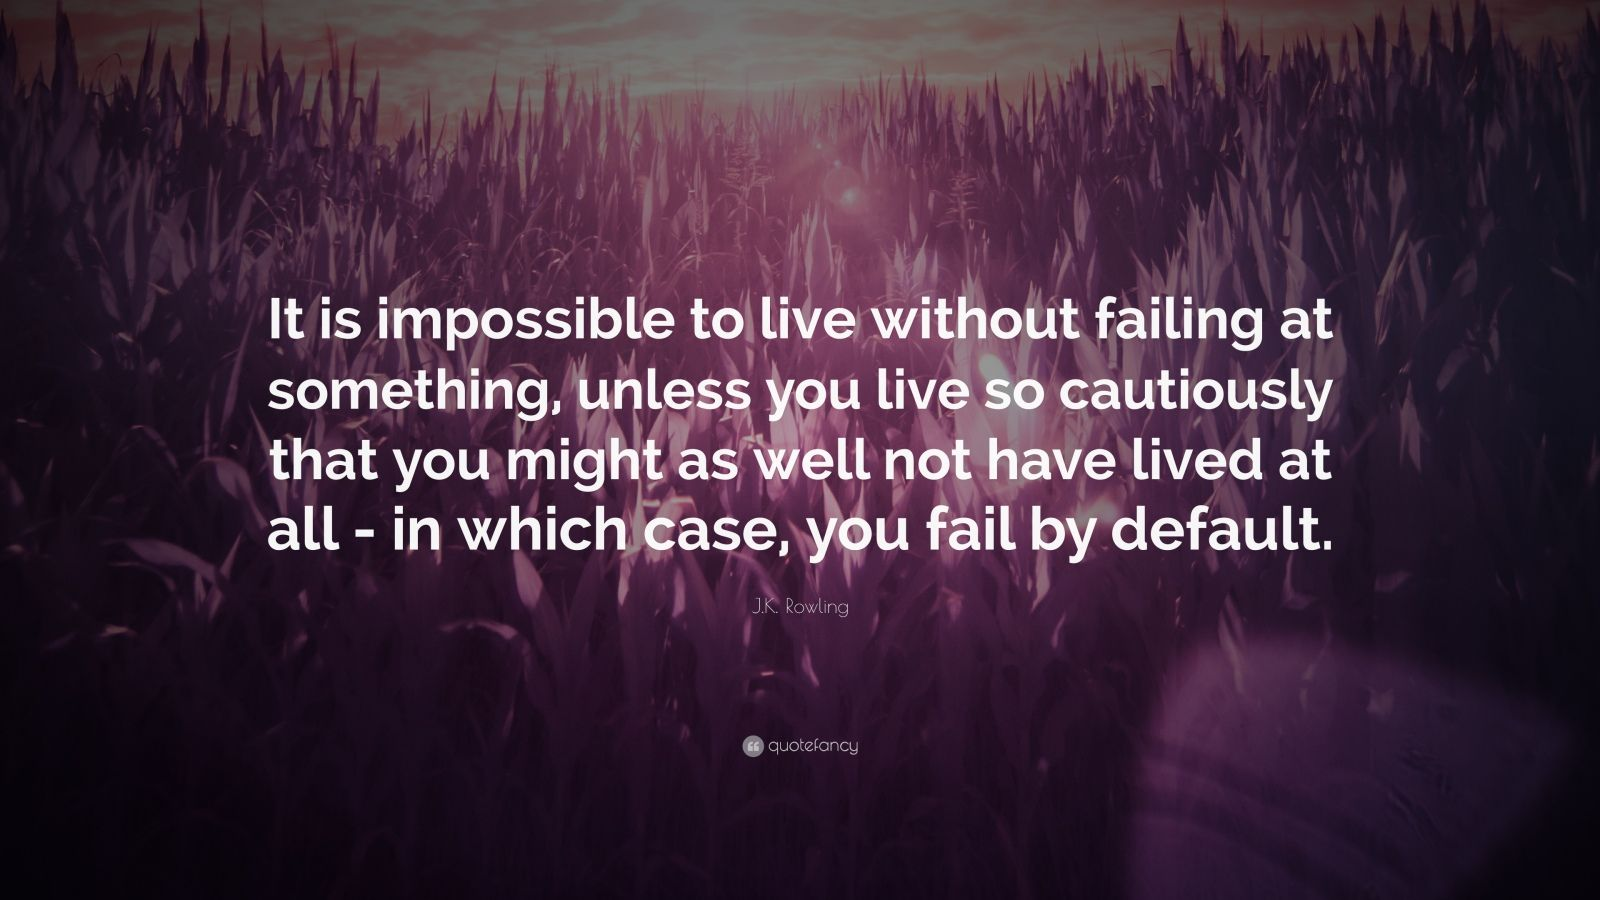 Harry Potter Quotes Desktop Wallpaper J K Rowling Quote It Is Impossible To Live Without